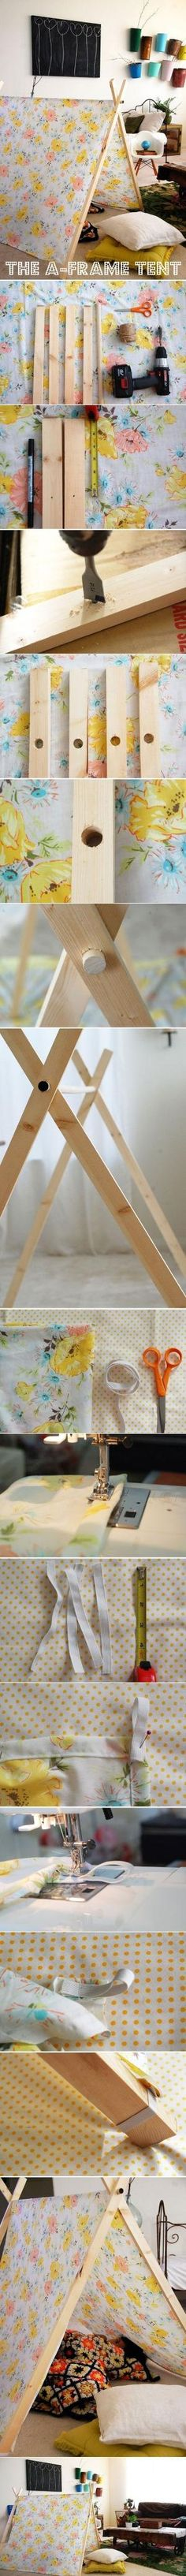 DIY tent! by alhely